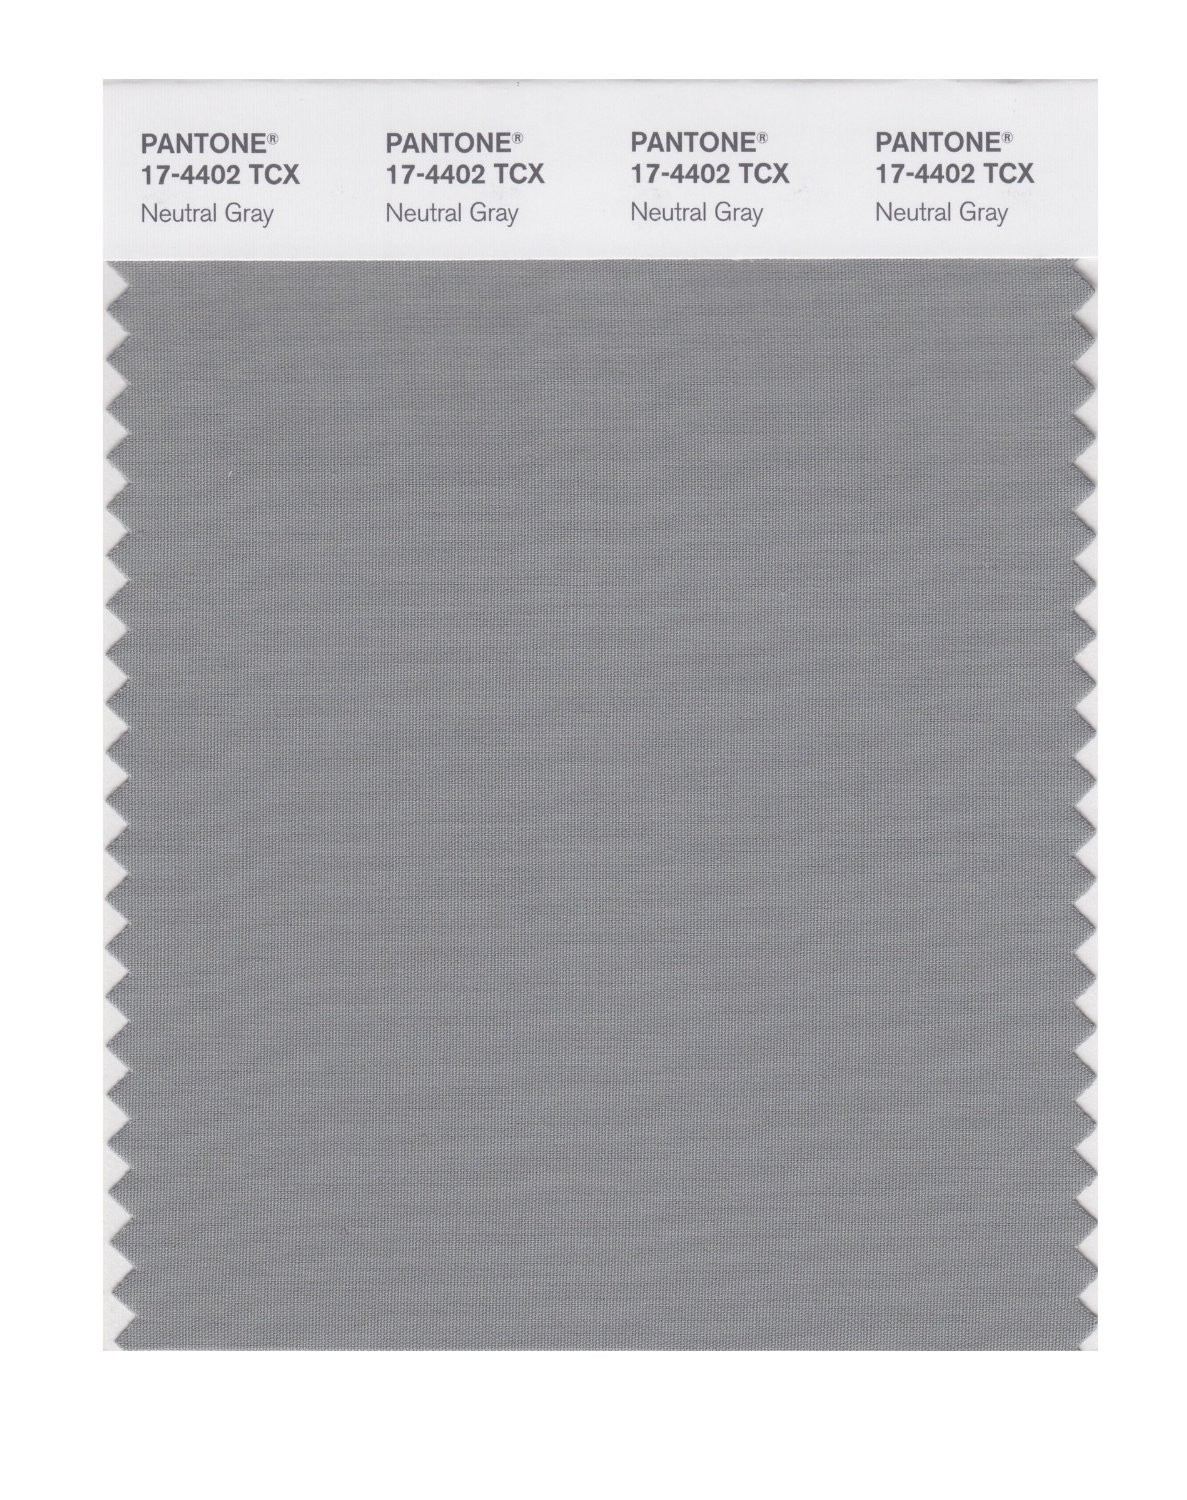 Pantone 17-4402 TCX Swatch Card Neutral Gray